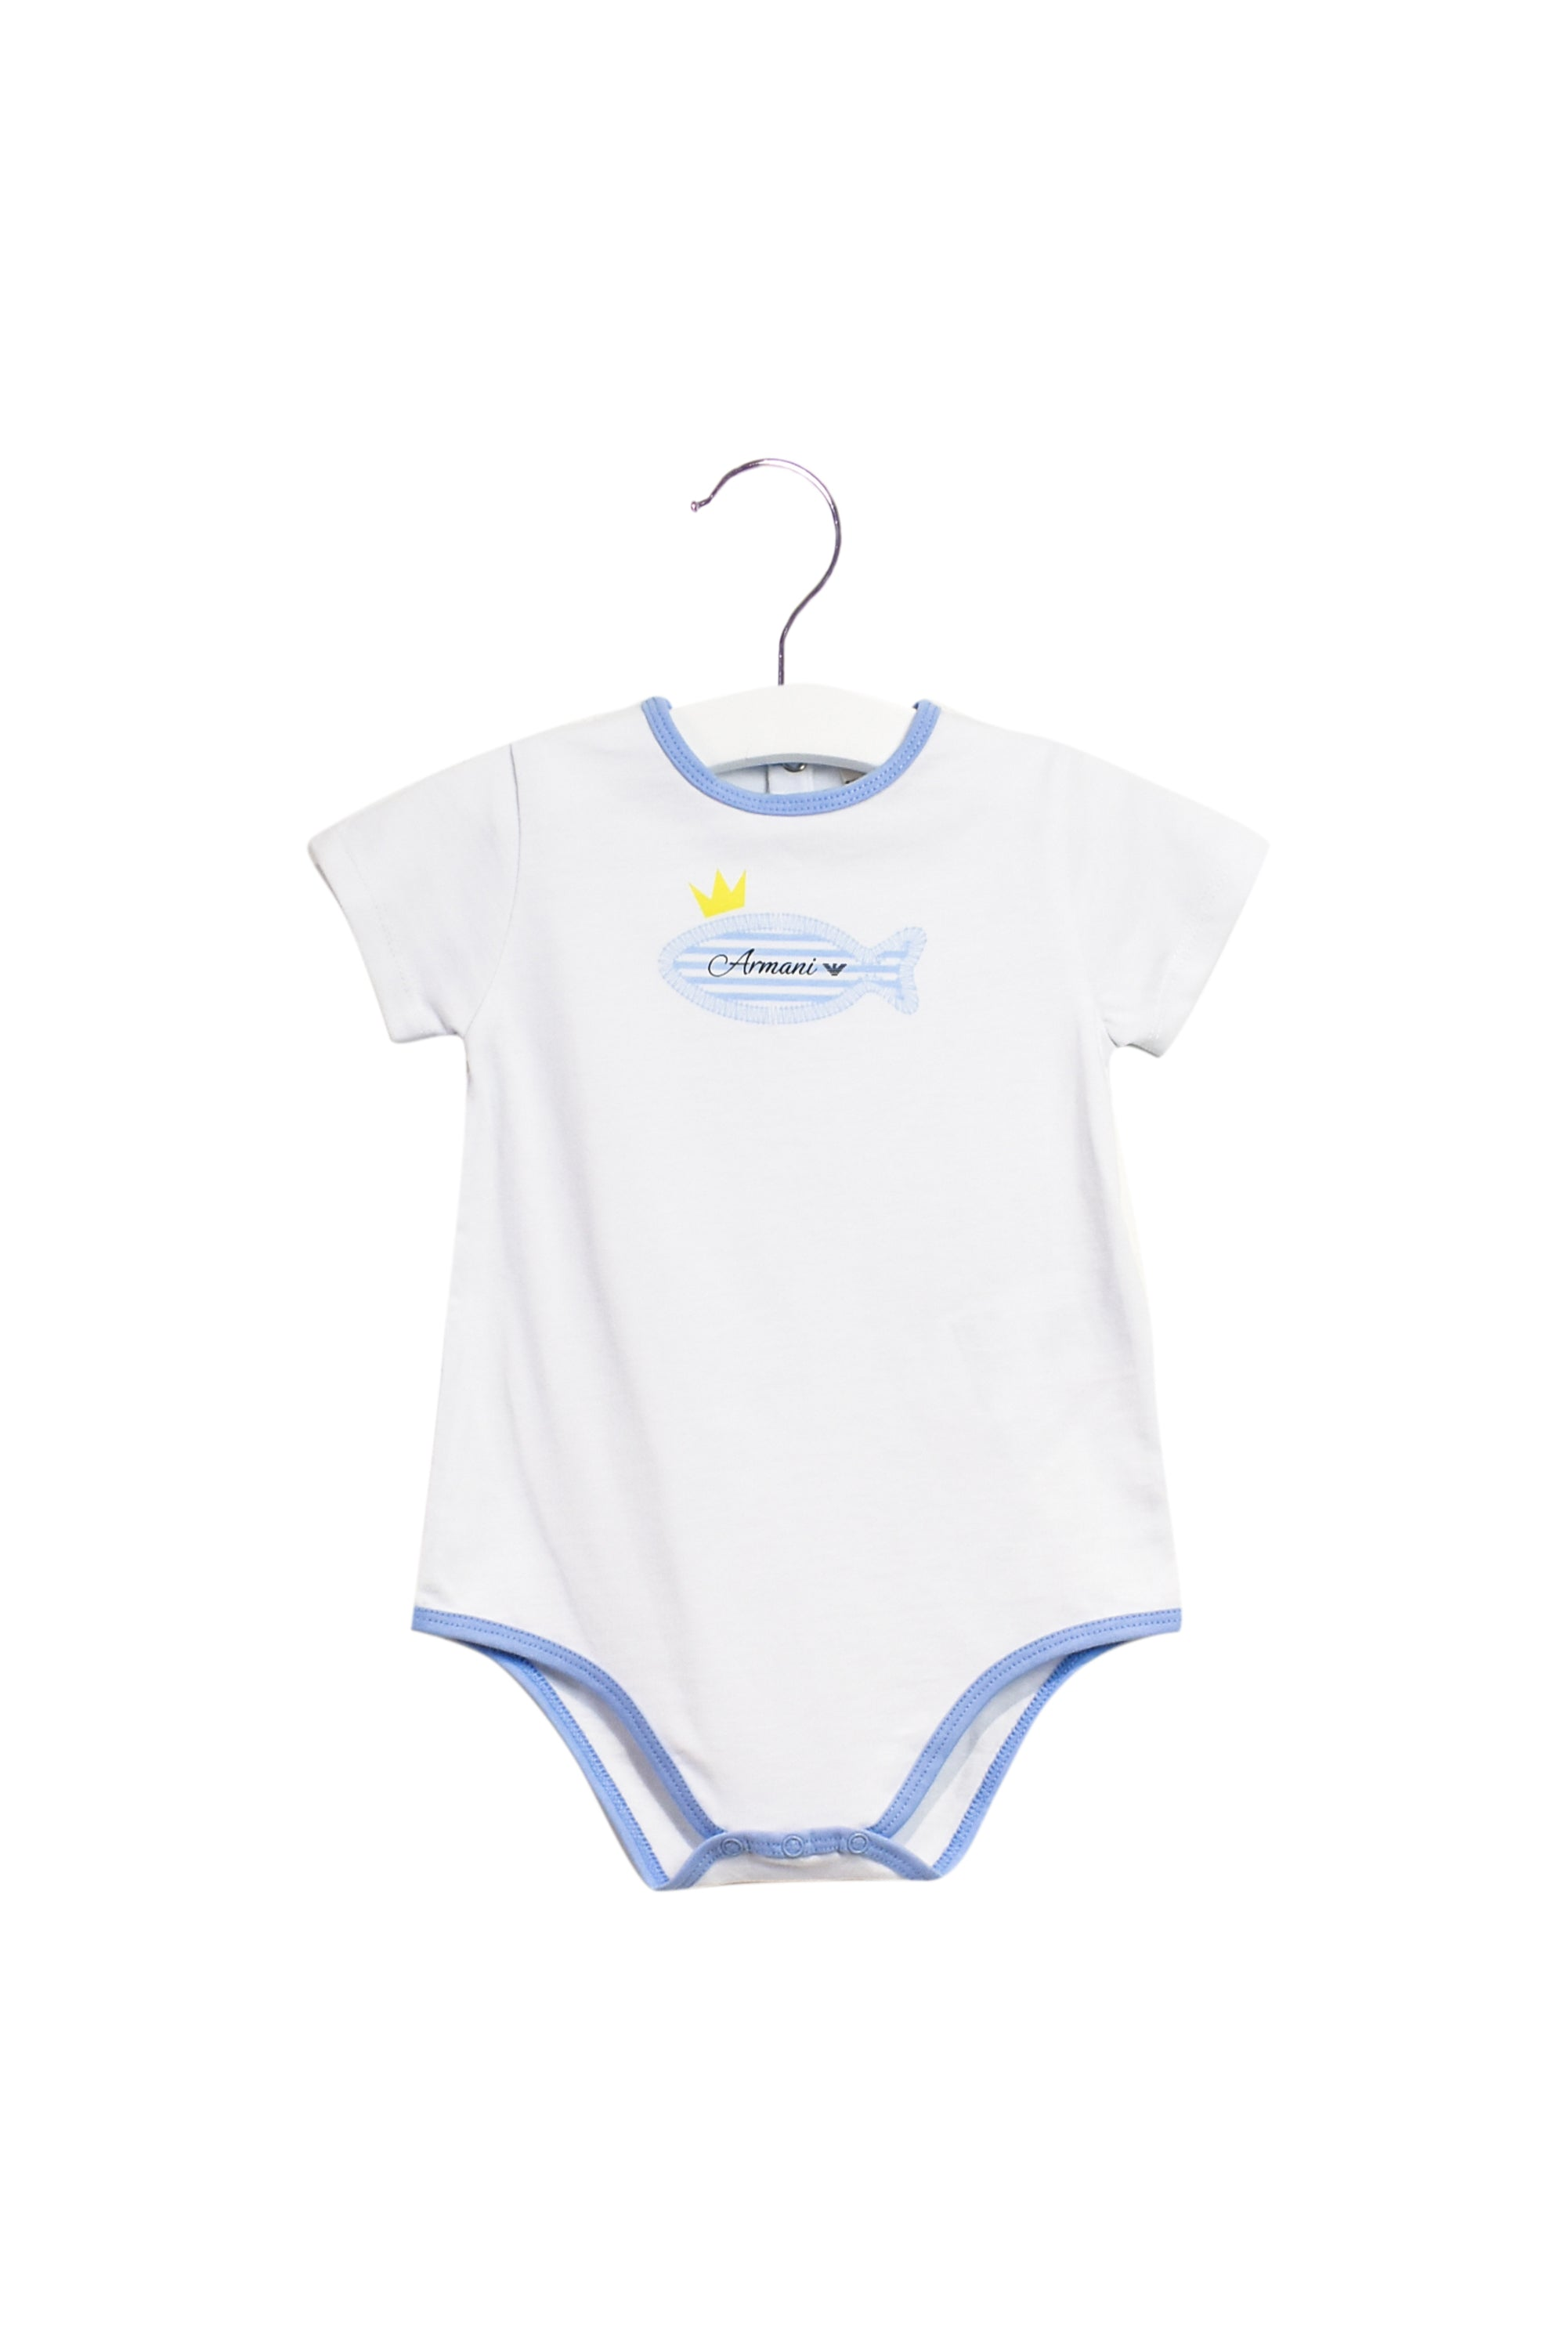 10023366 Armani Baby~Bodysuit 12M at Retykle